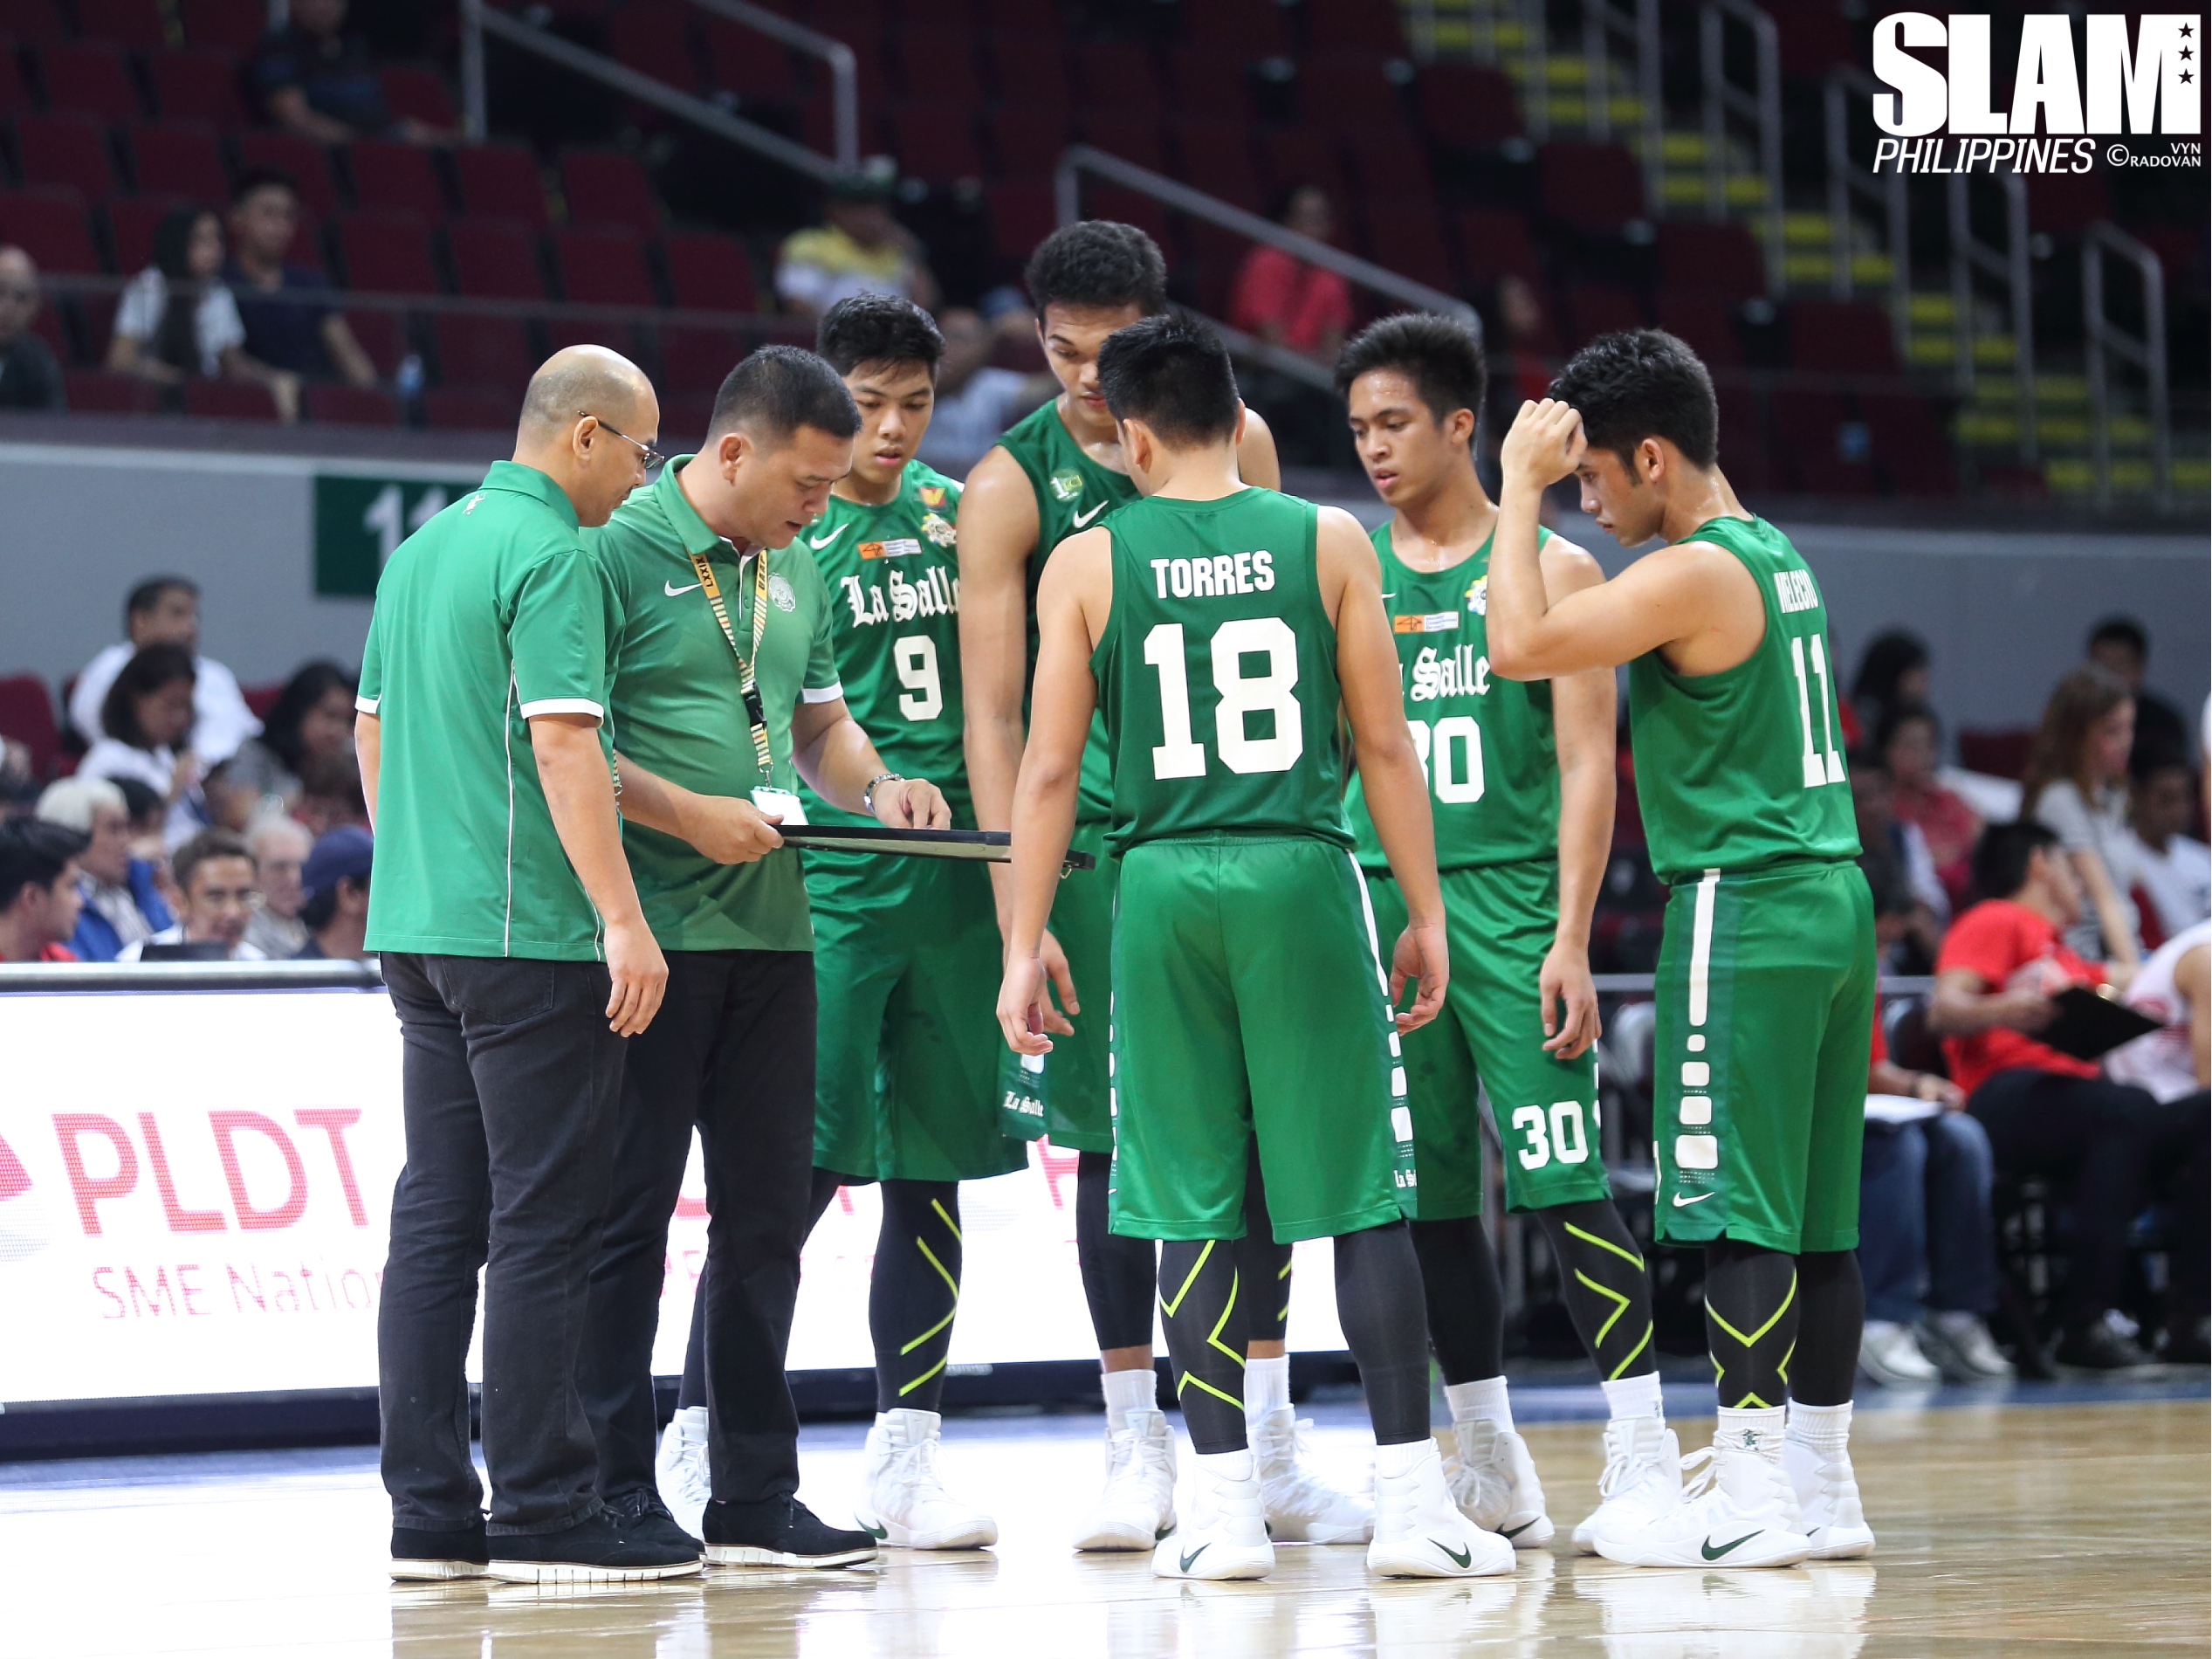 Swishes and Swooshes – The De La Salle Green Archers and their team shoes